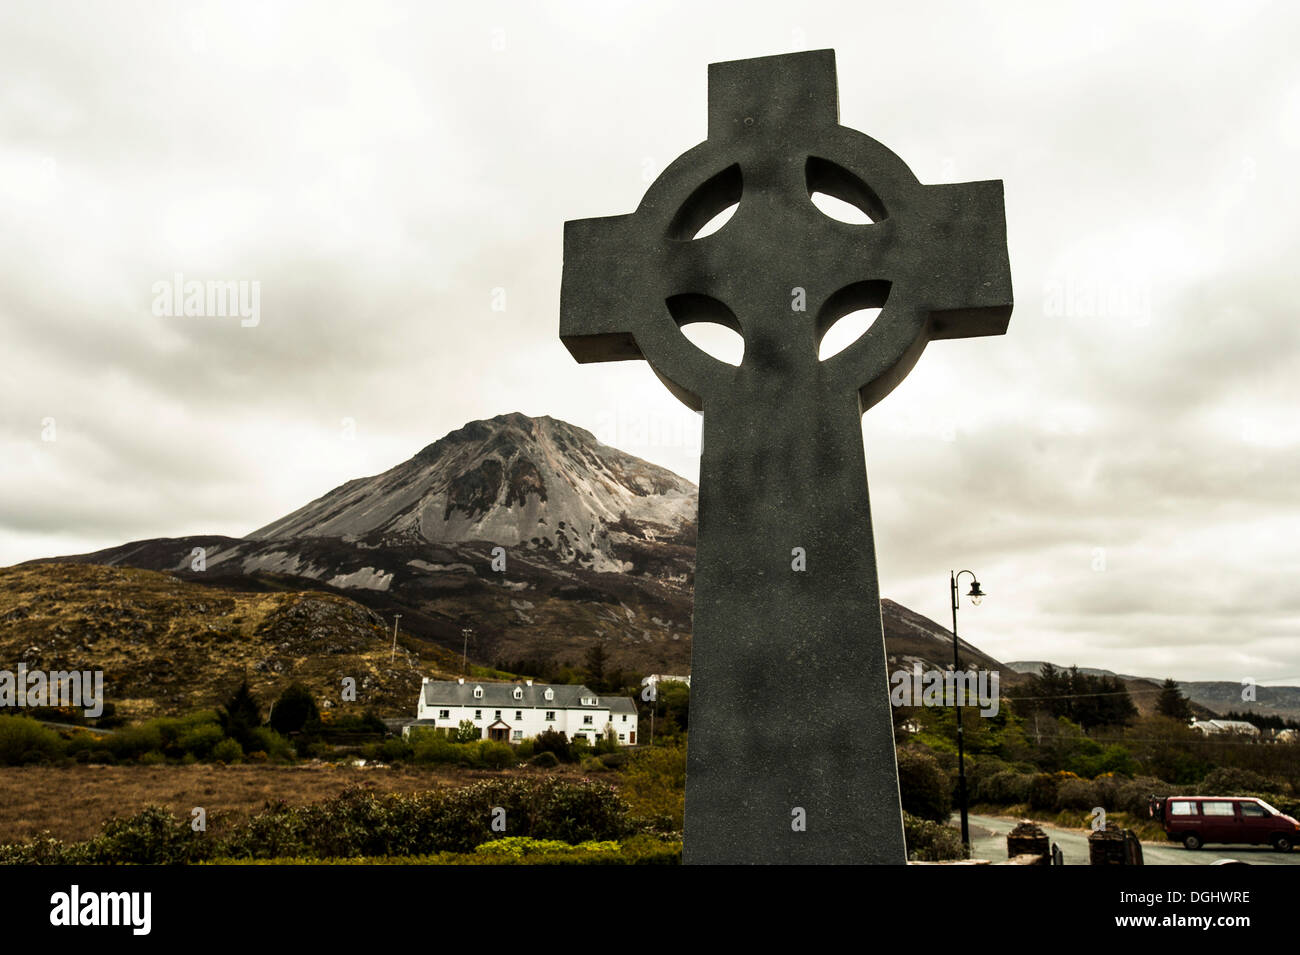 Celtic ross in front of Mt Errigal, Money Beg, County Donegal, Republic of Ireland, Europe - Stock Image